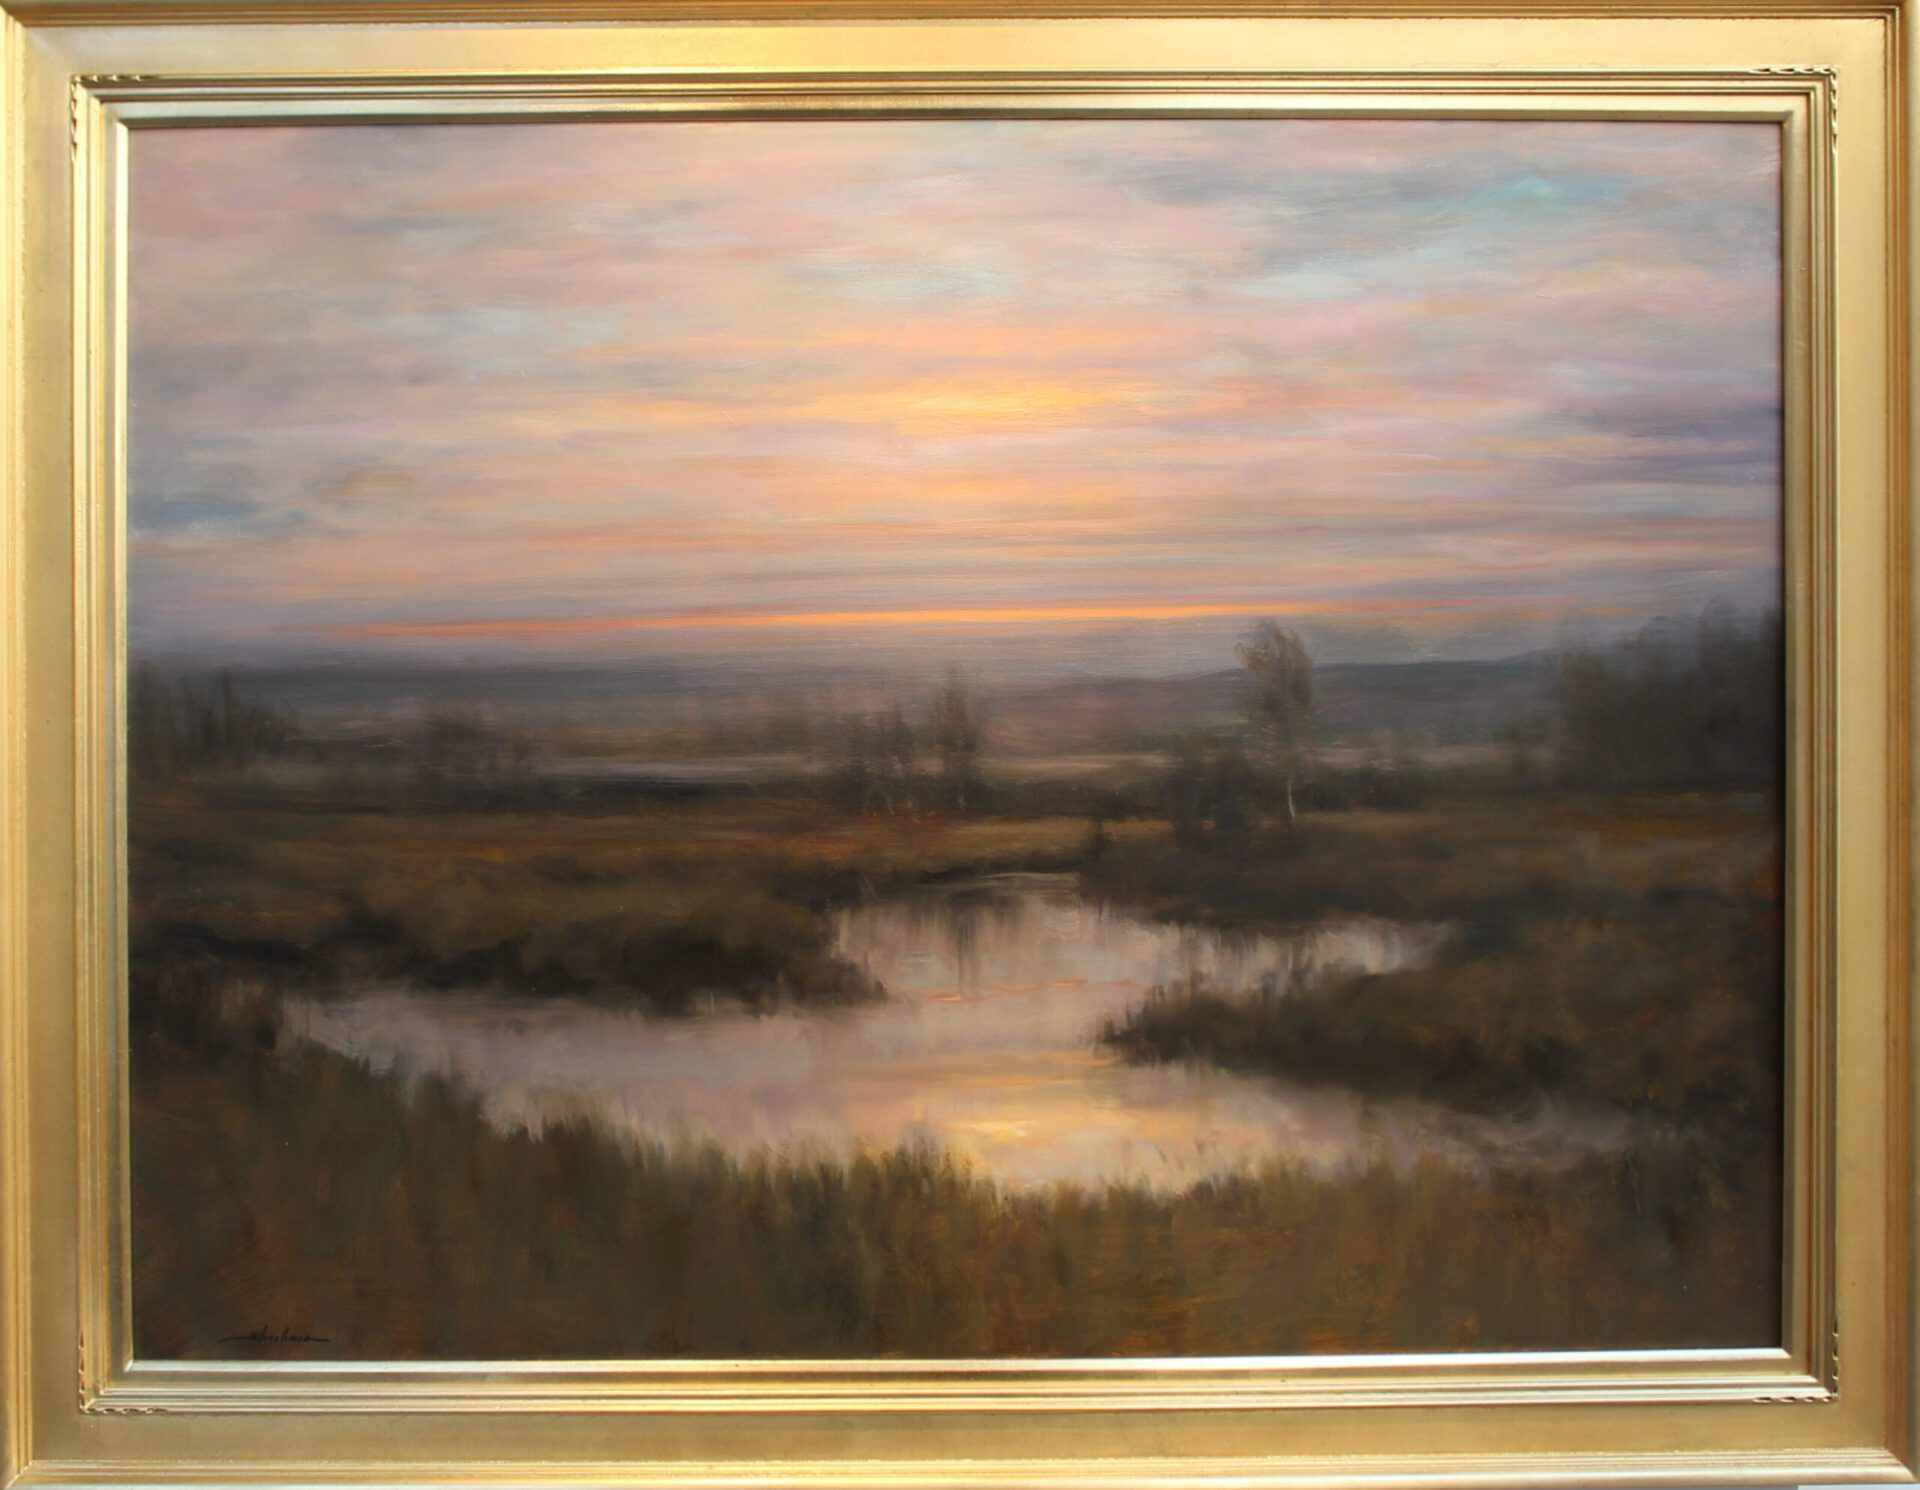 Sheehan_In_Natures_Realm_36x48_Frame